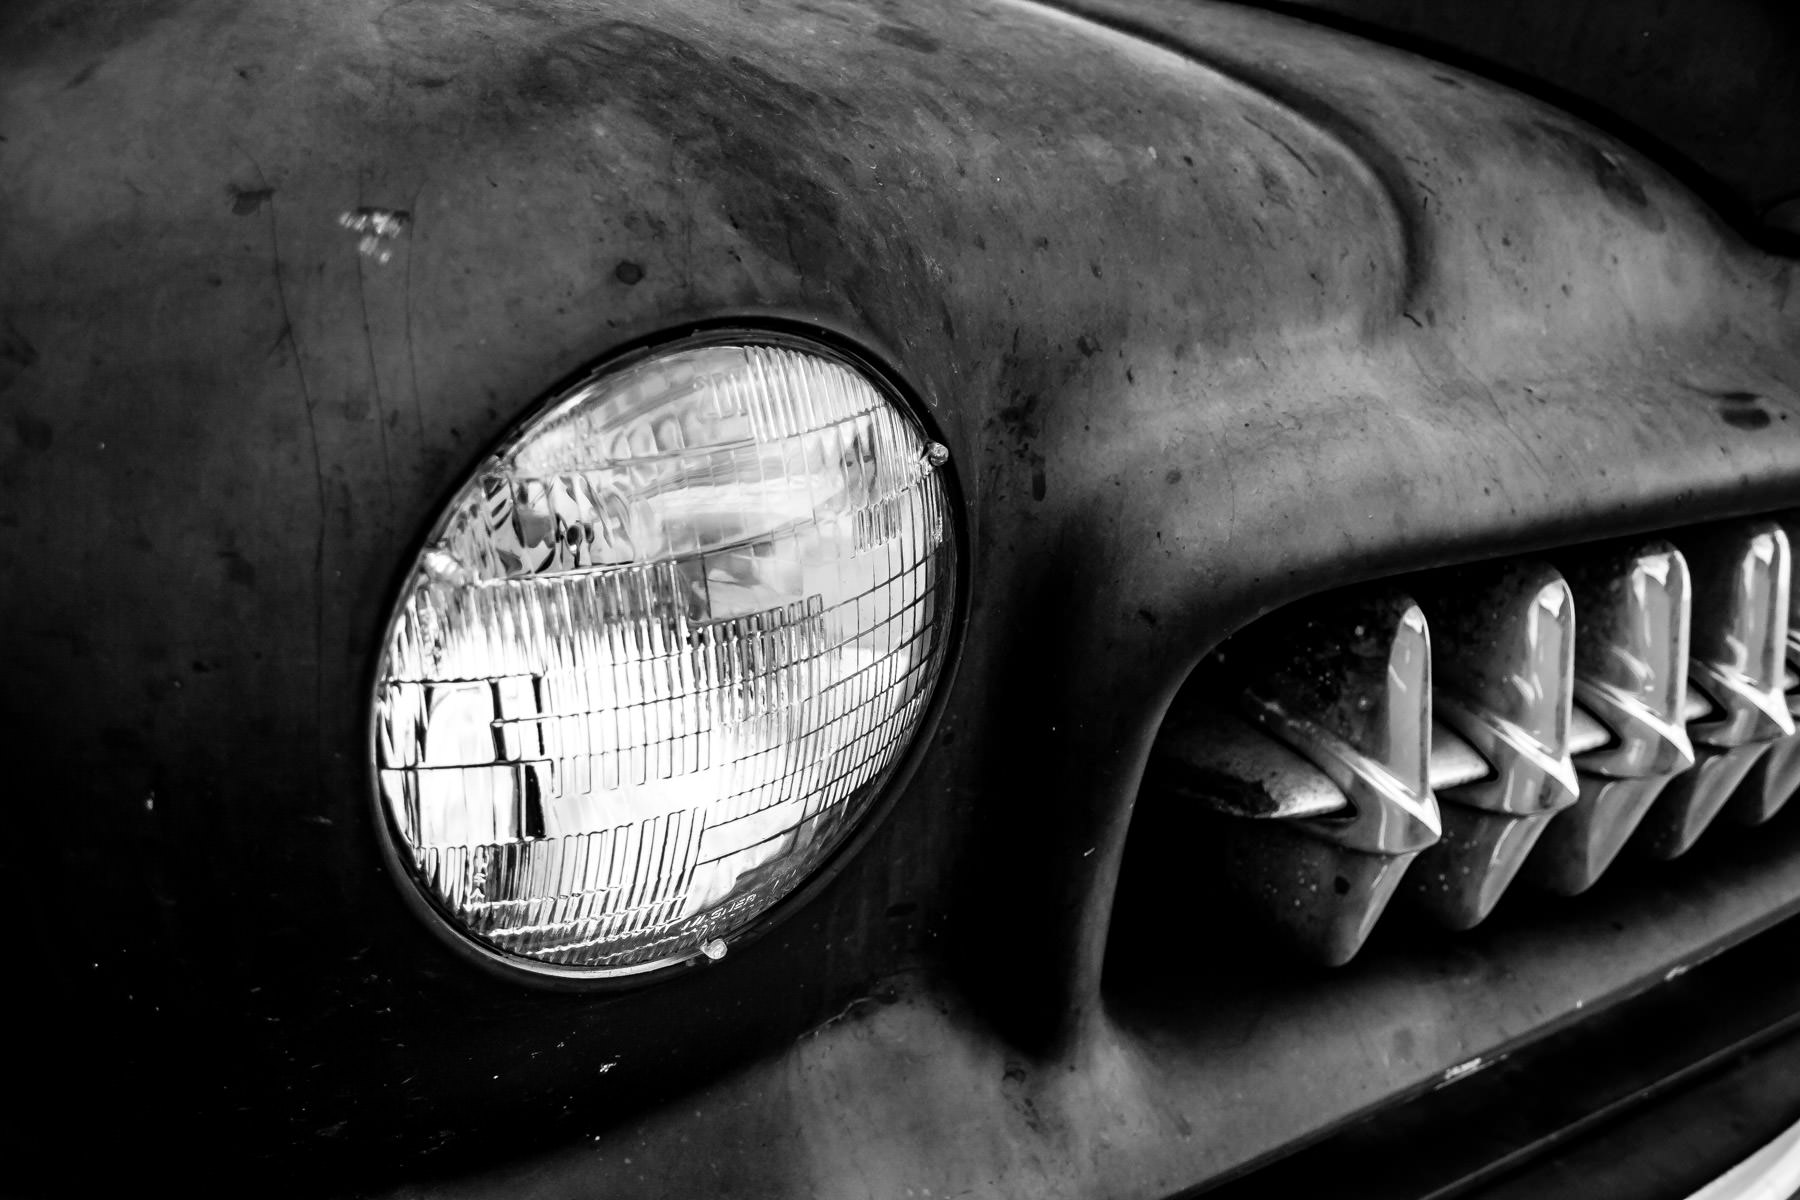 The headlight of a broke-down, abandoned classic Mercury found atop the parking garage of Eastside Village in Downtown Plano, TX.